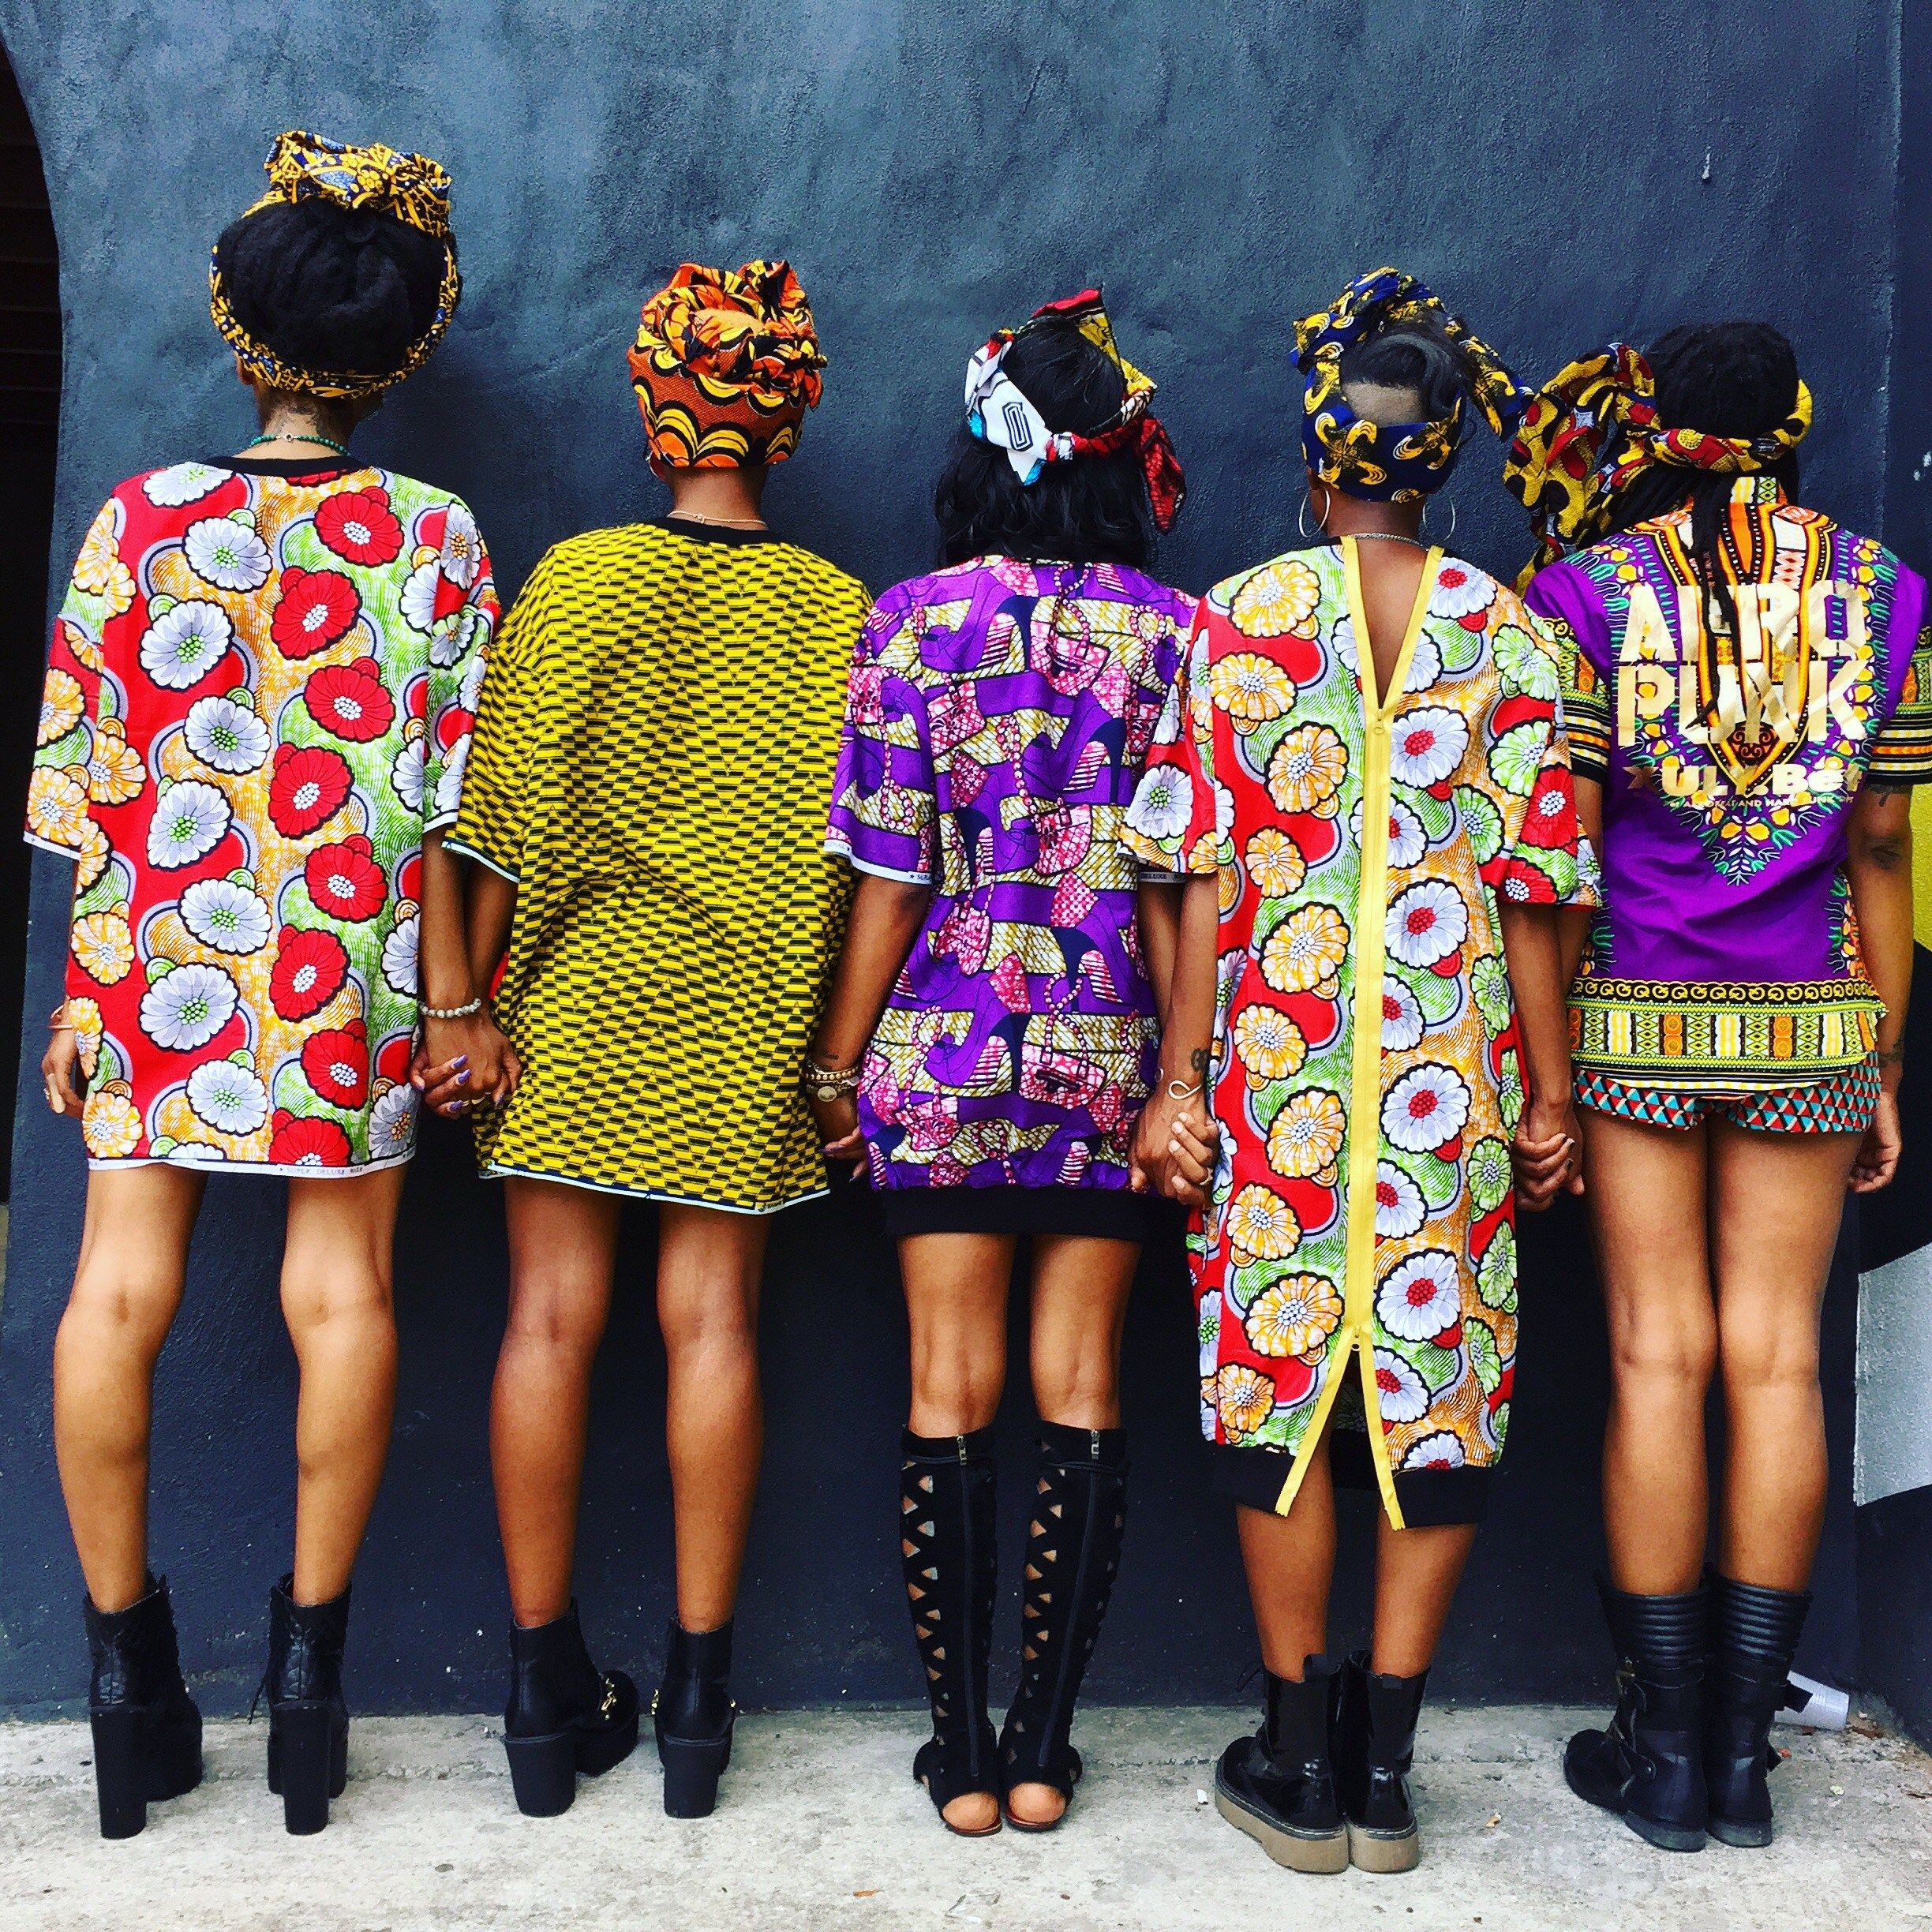 Afro Punk Fashion: Just Another WordPress Site